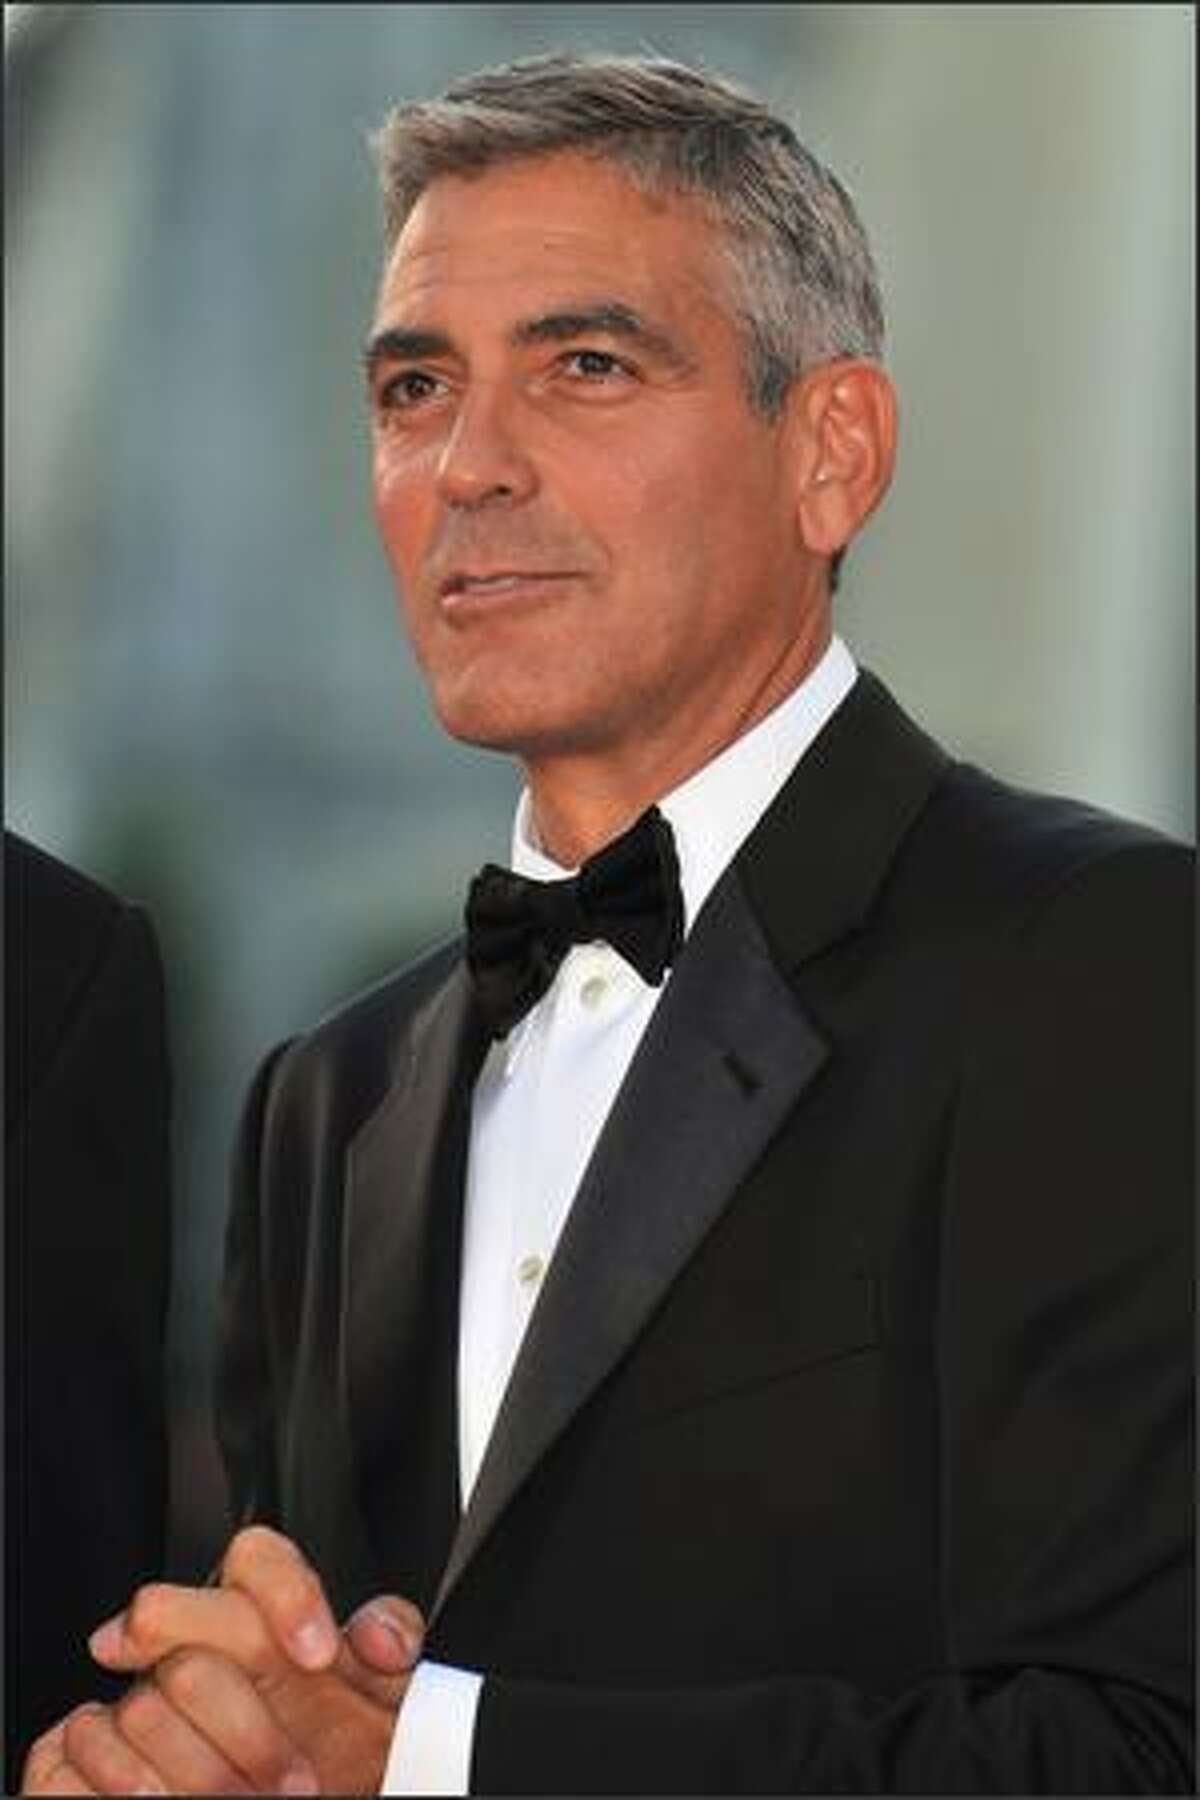 Actor George Clooney arrives at the opening ceremony and